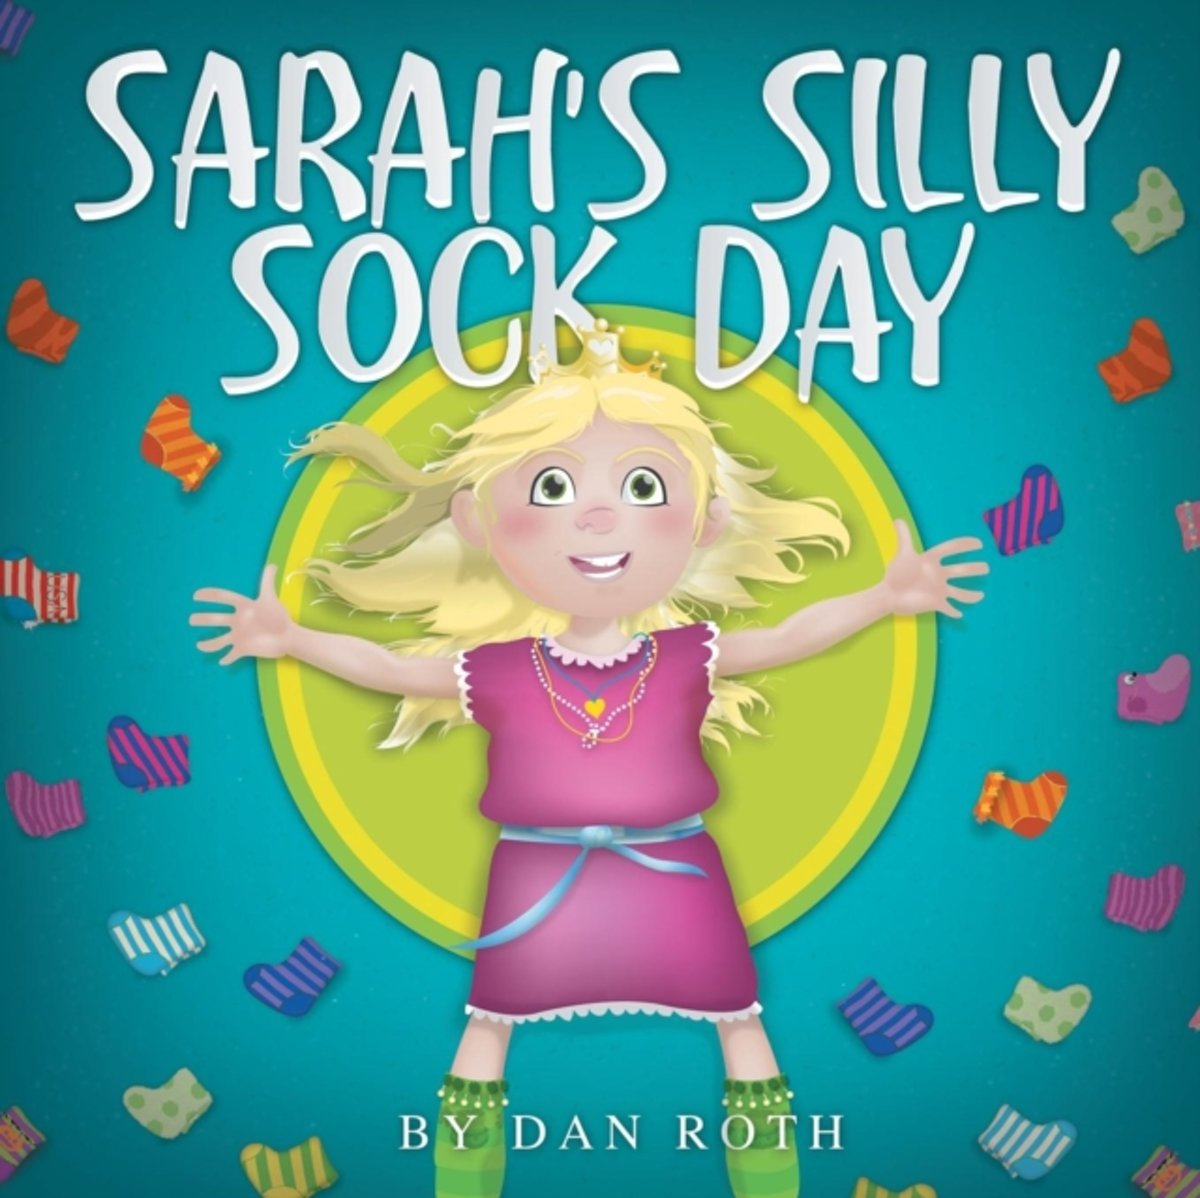 Sarah's Silly Sock Day